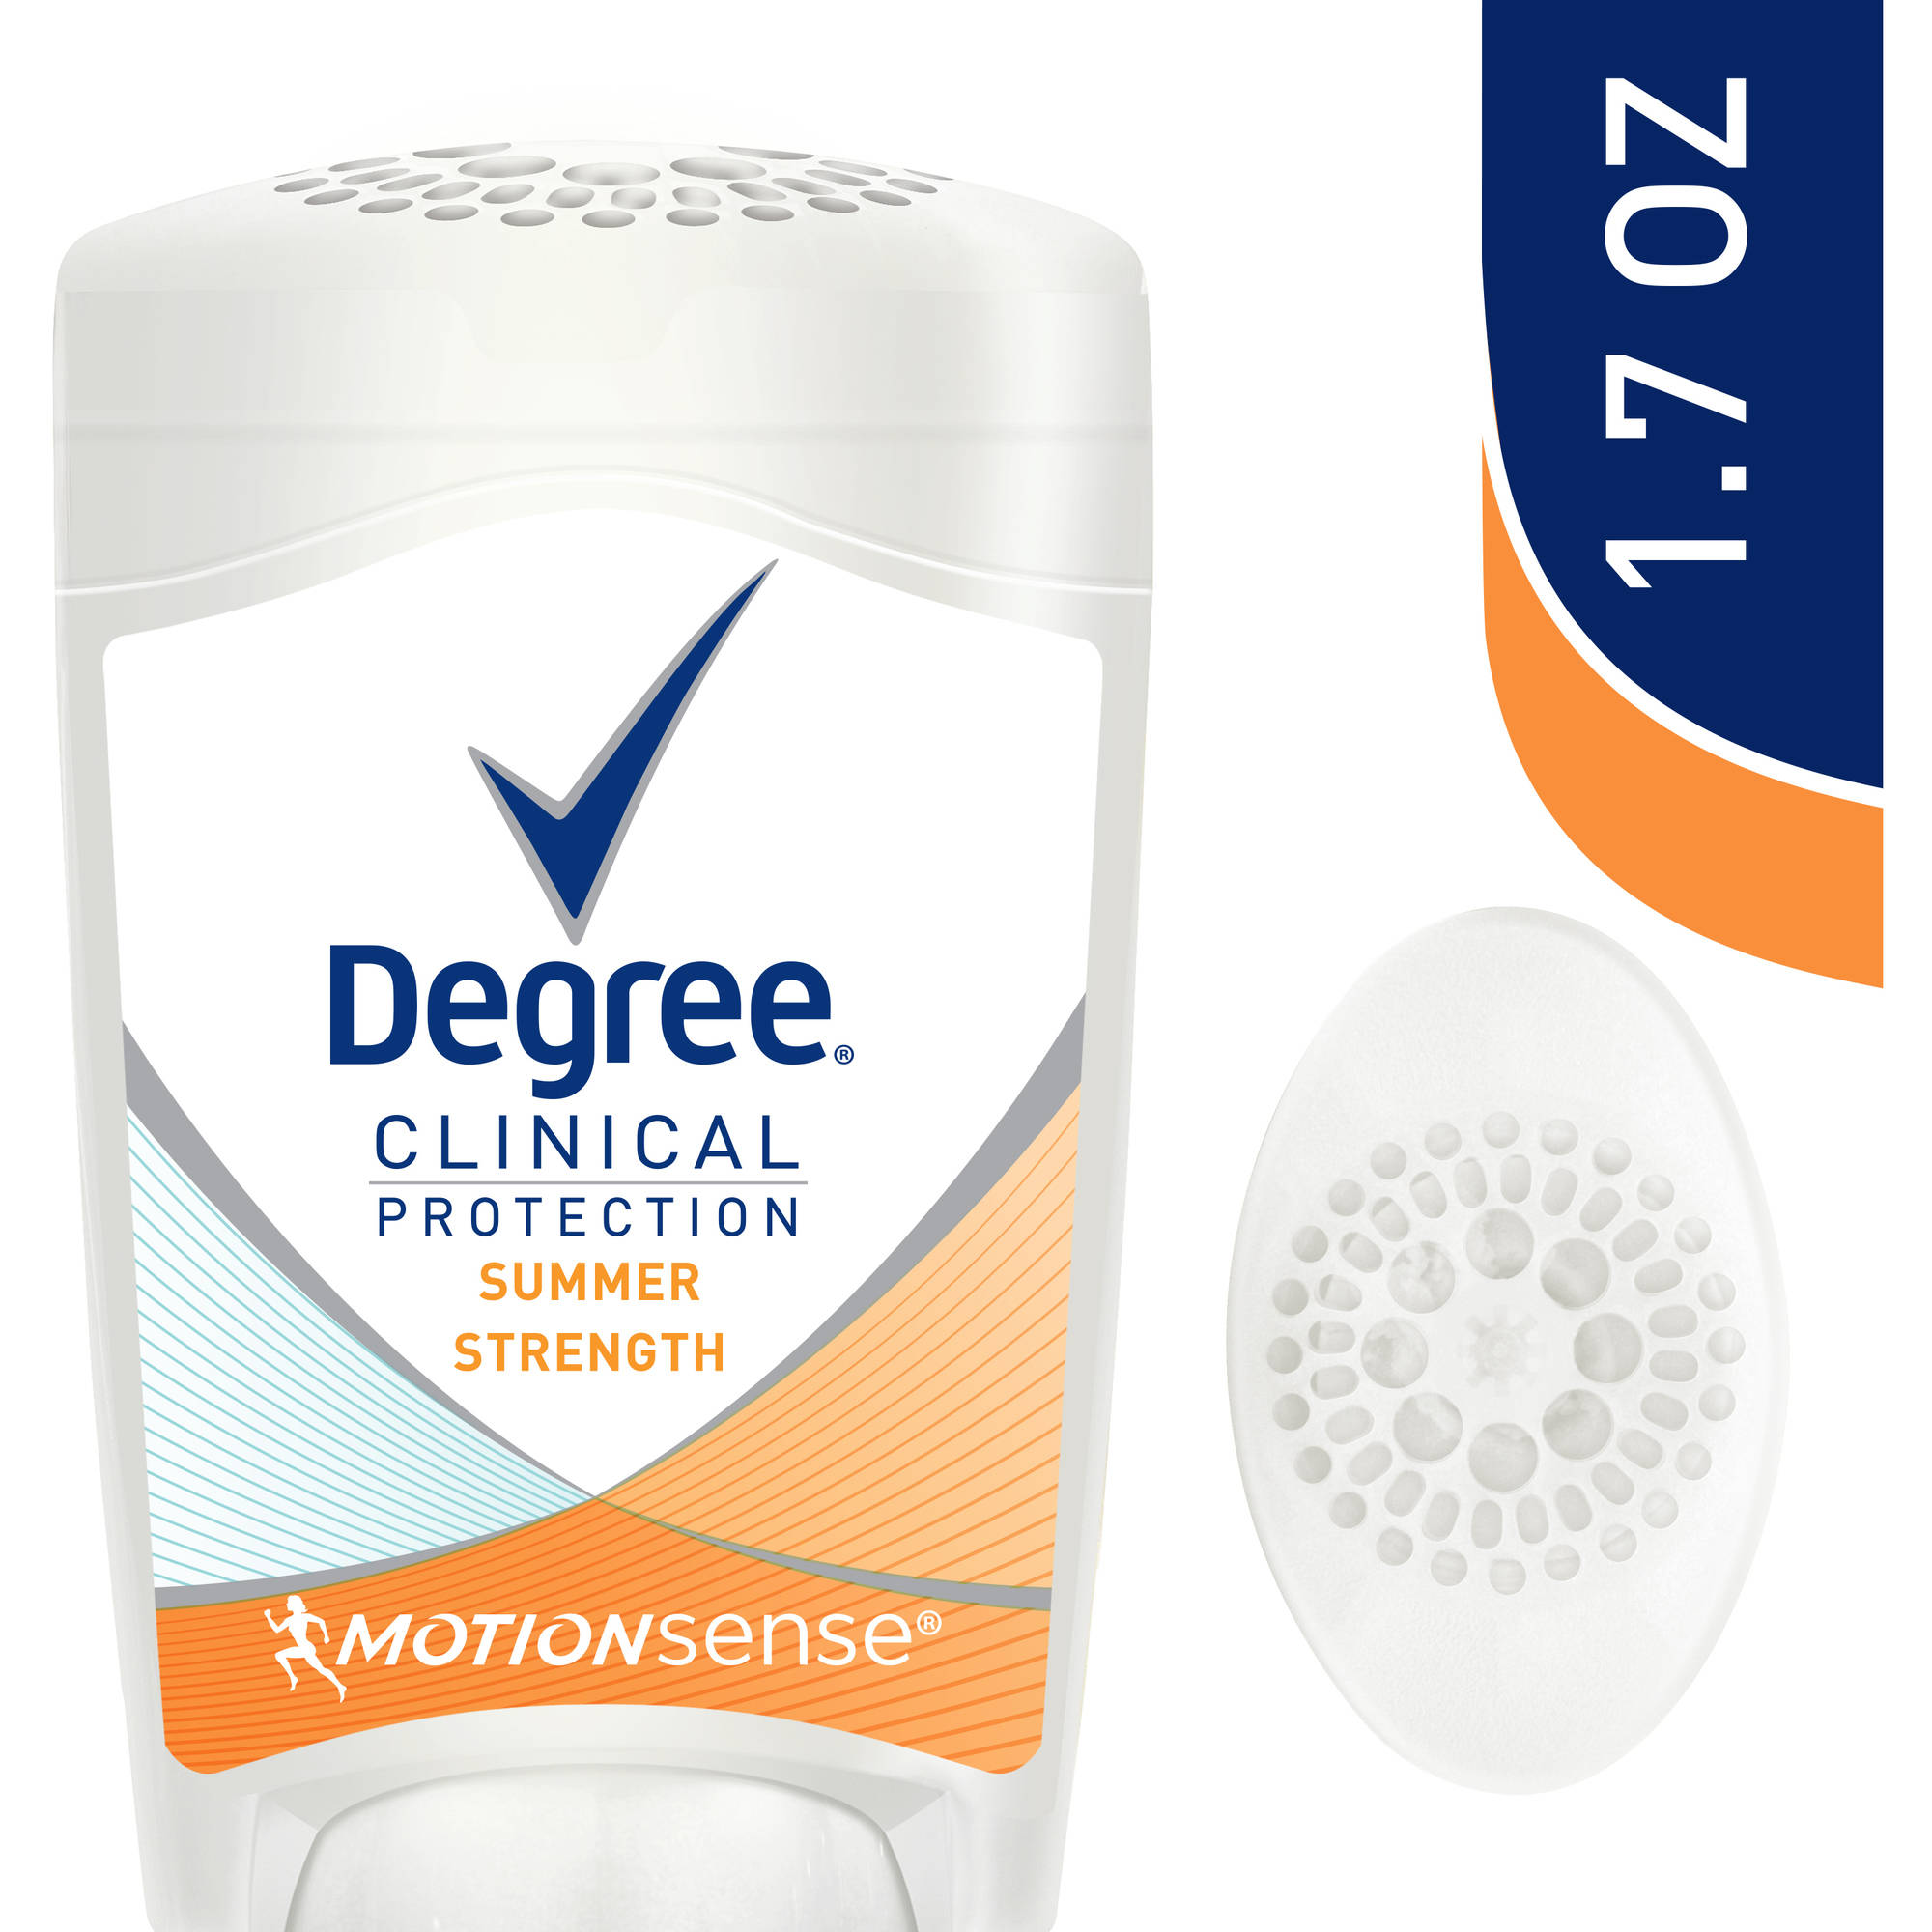 Degree Clinical Protection Summer Strength Antiperspirant Deodorant, 1.7 oz